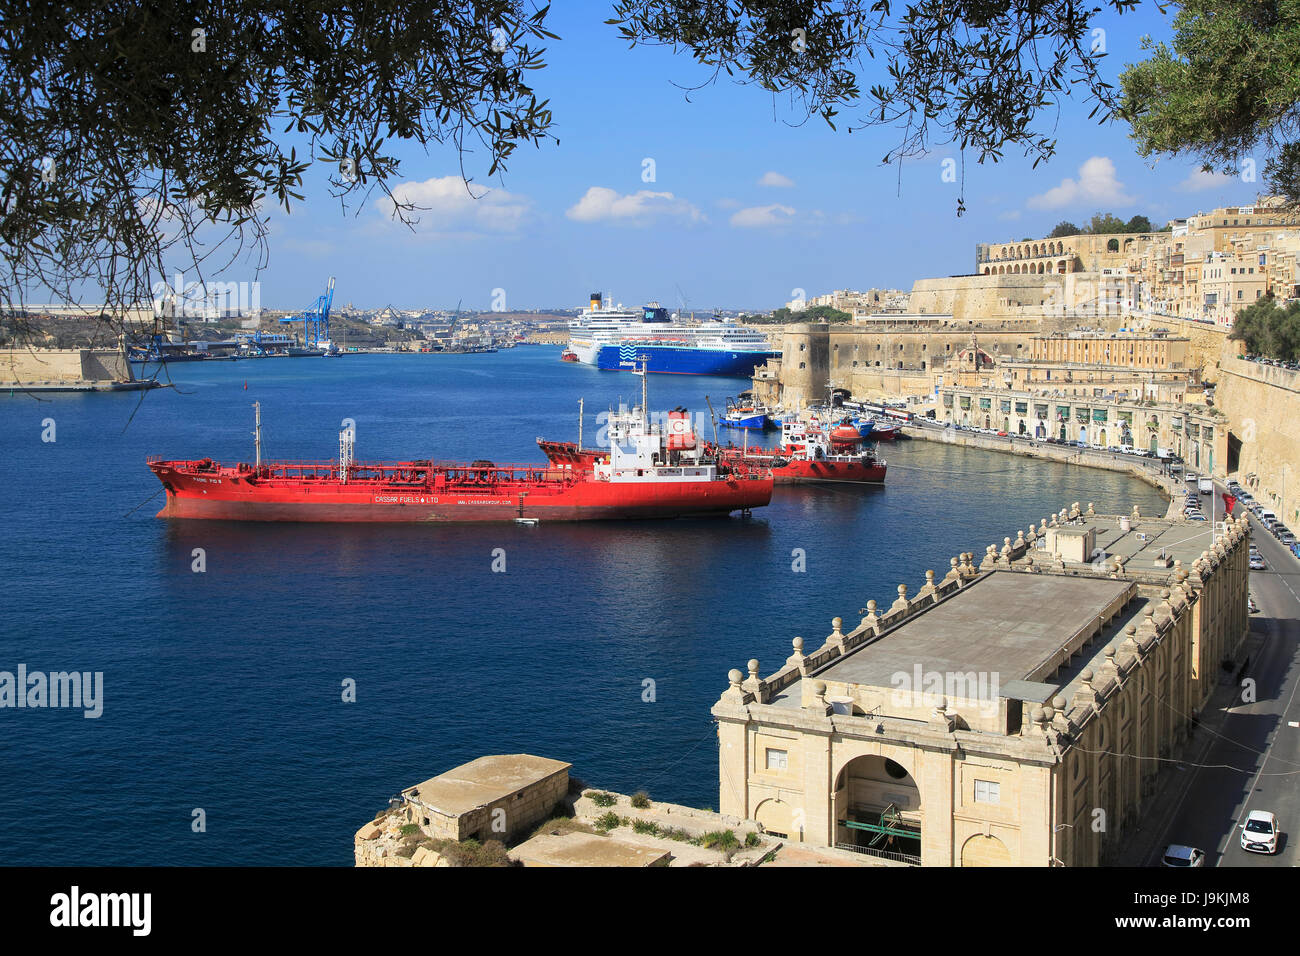 Merchant shipping and cruise ships in Grand Harbour, Valletta, Malta - Stock Image